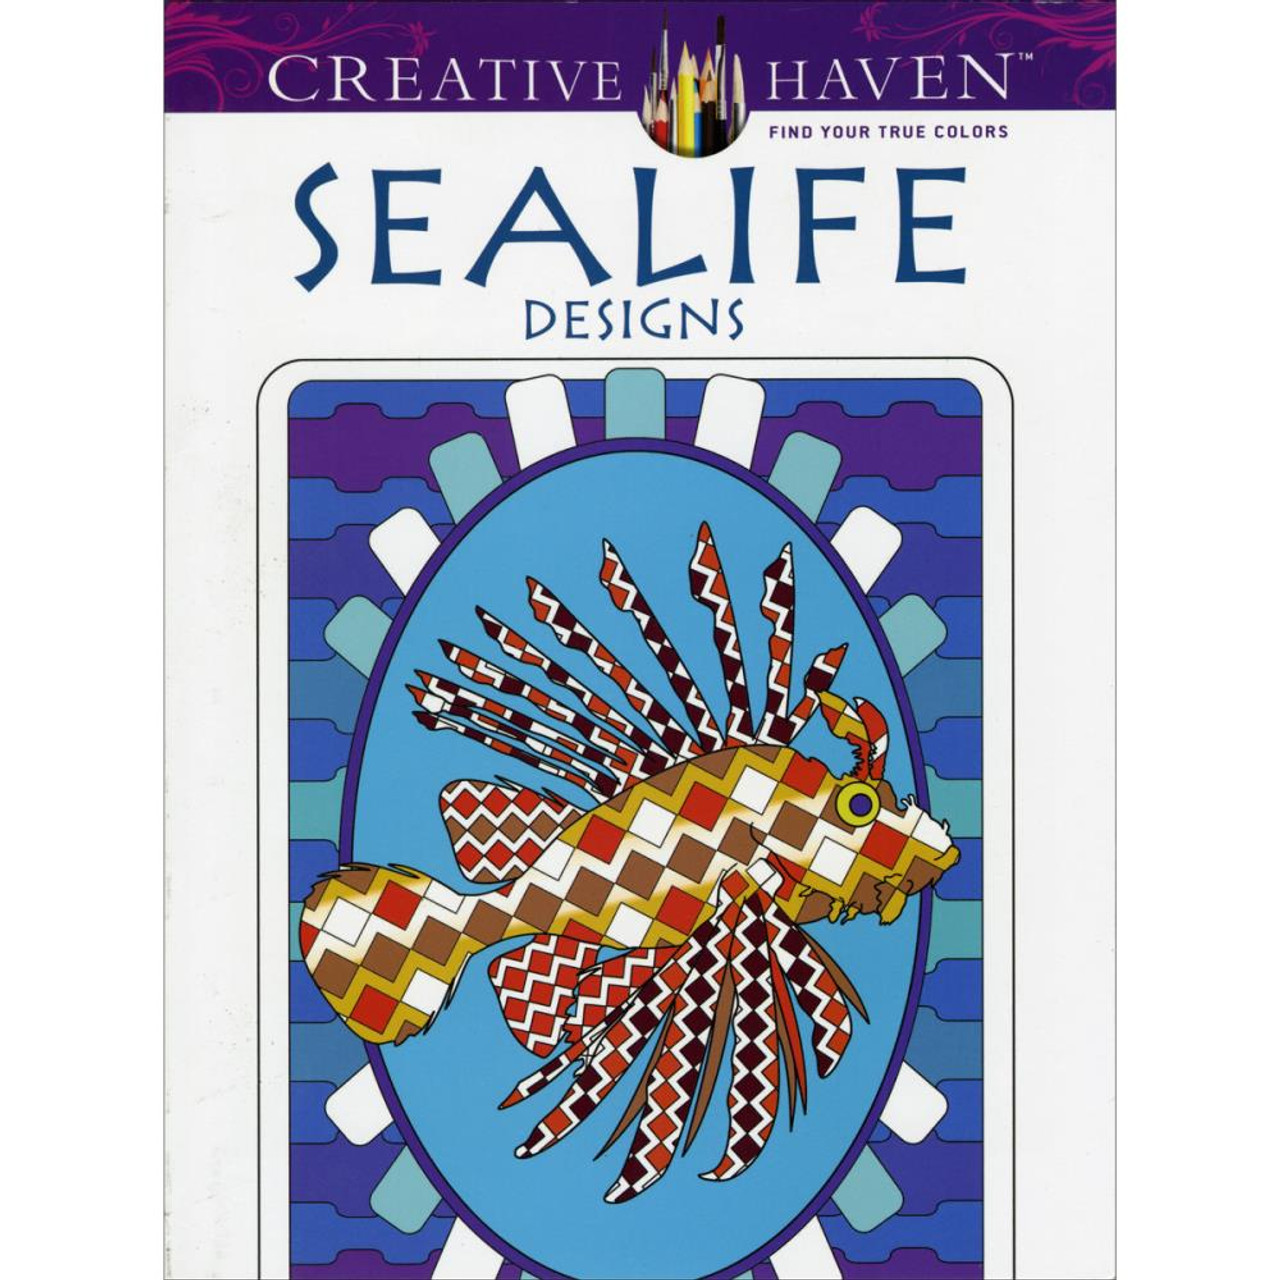 creative haven coloring book sealife - Creative Haven Coloring Books